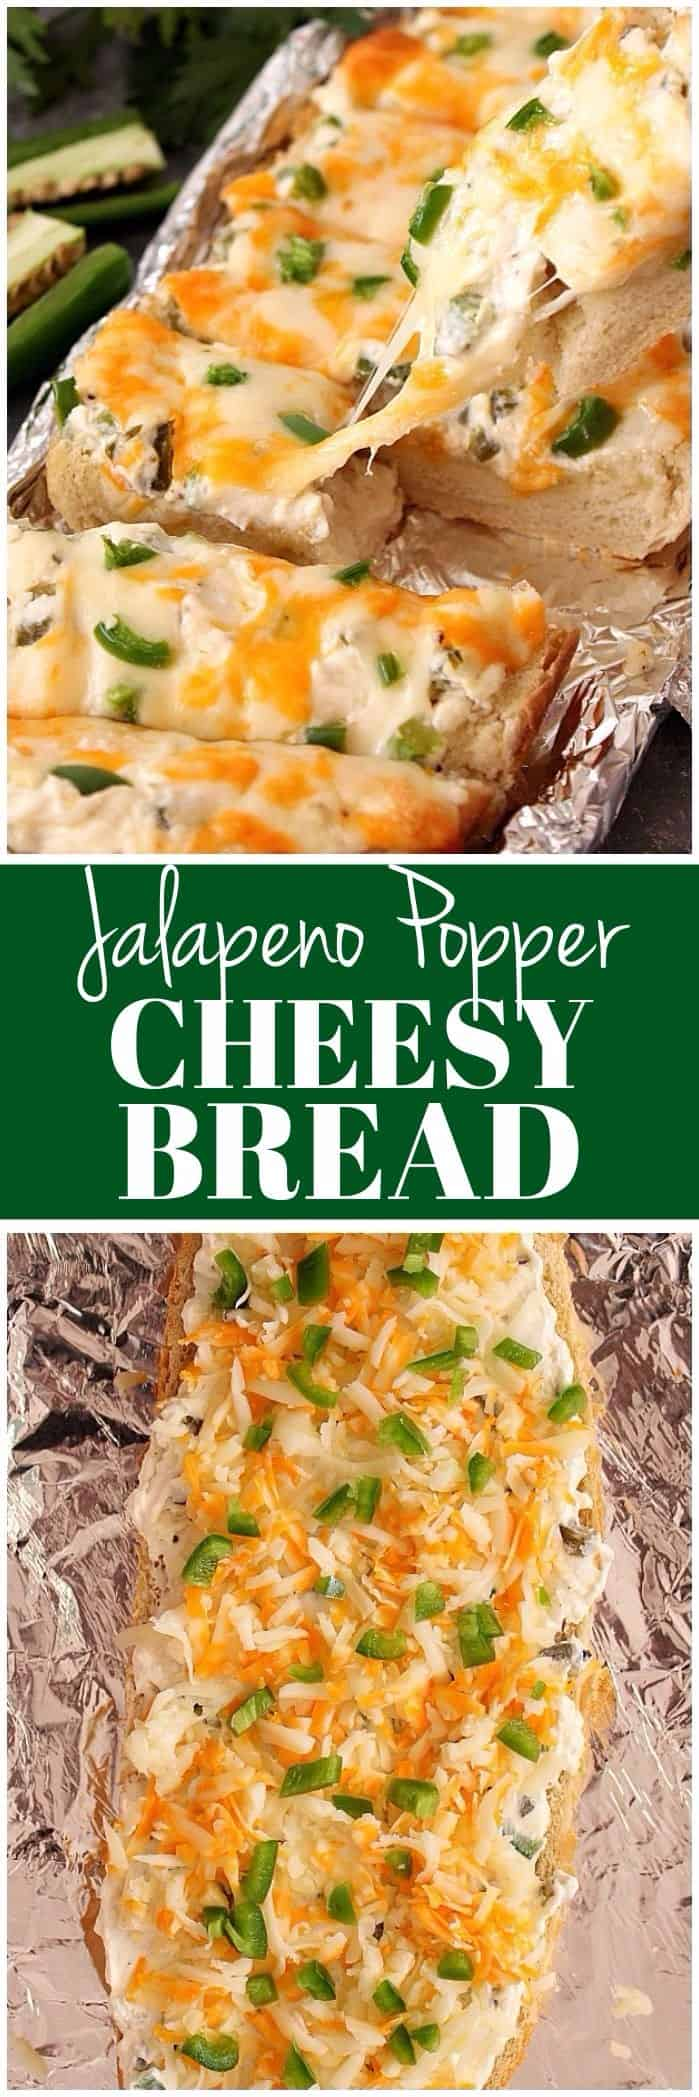 jalapeno popper bread recipe long1 Cheesy Jalapeno Popper Bread Recipe